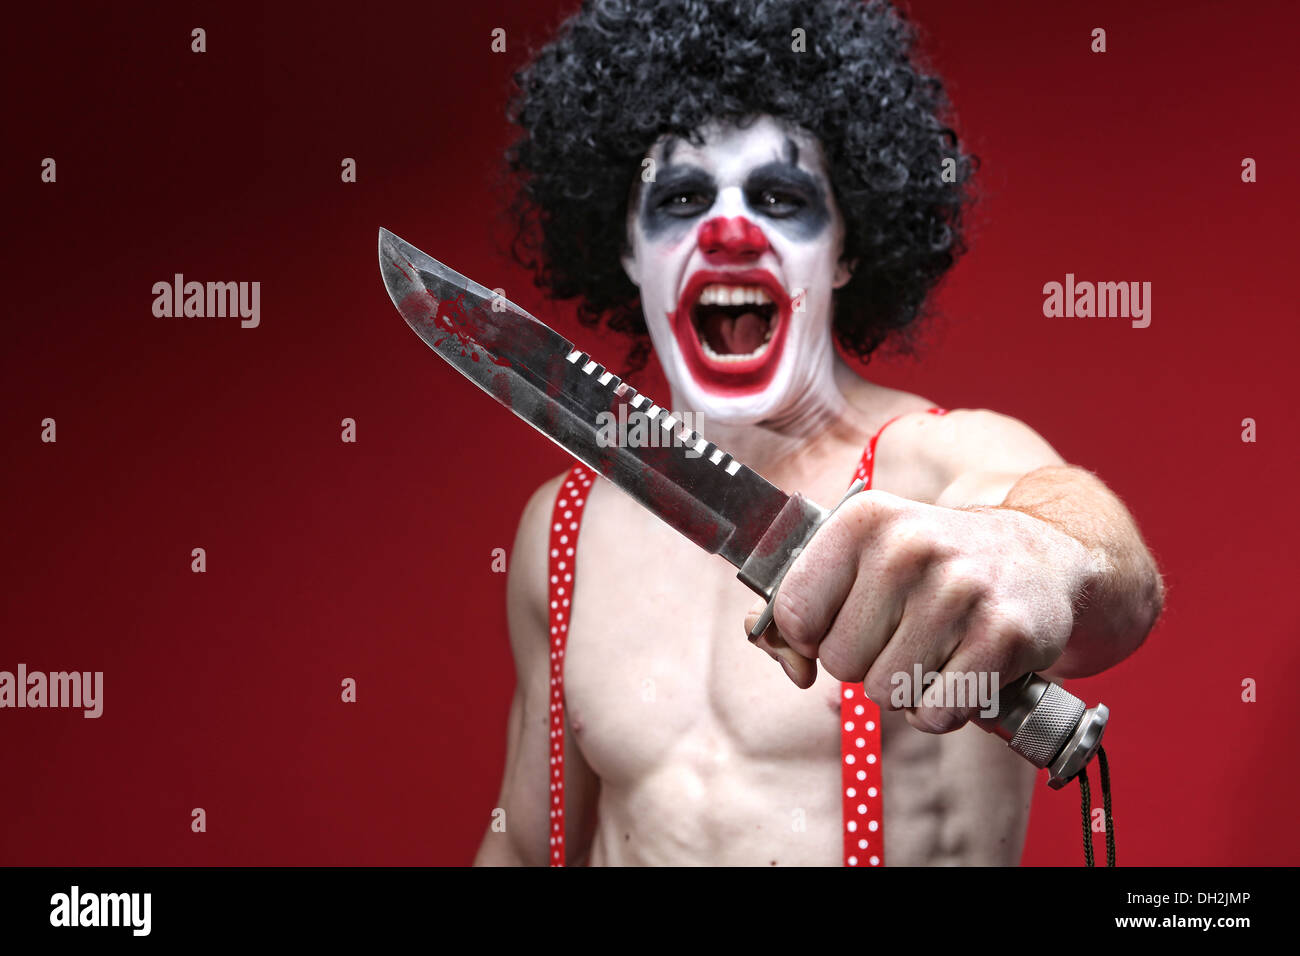 Evil Clown effrayant Portrait Holding Knife Photo Stock